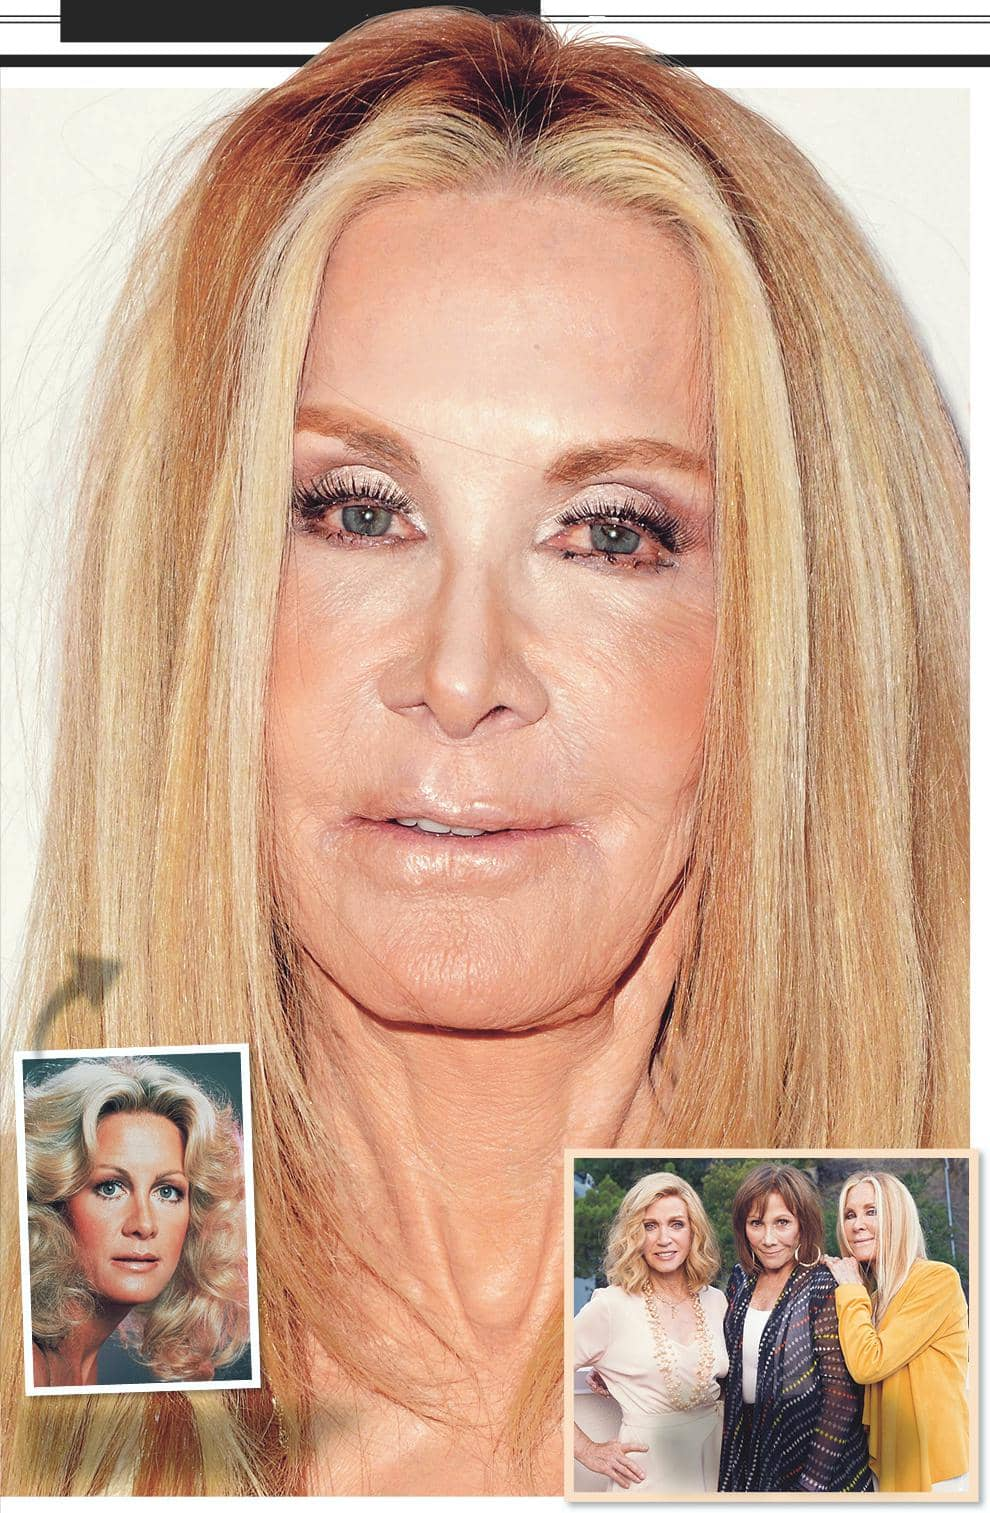 JOAN VAN ARK'S FACE IS MELTING!